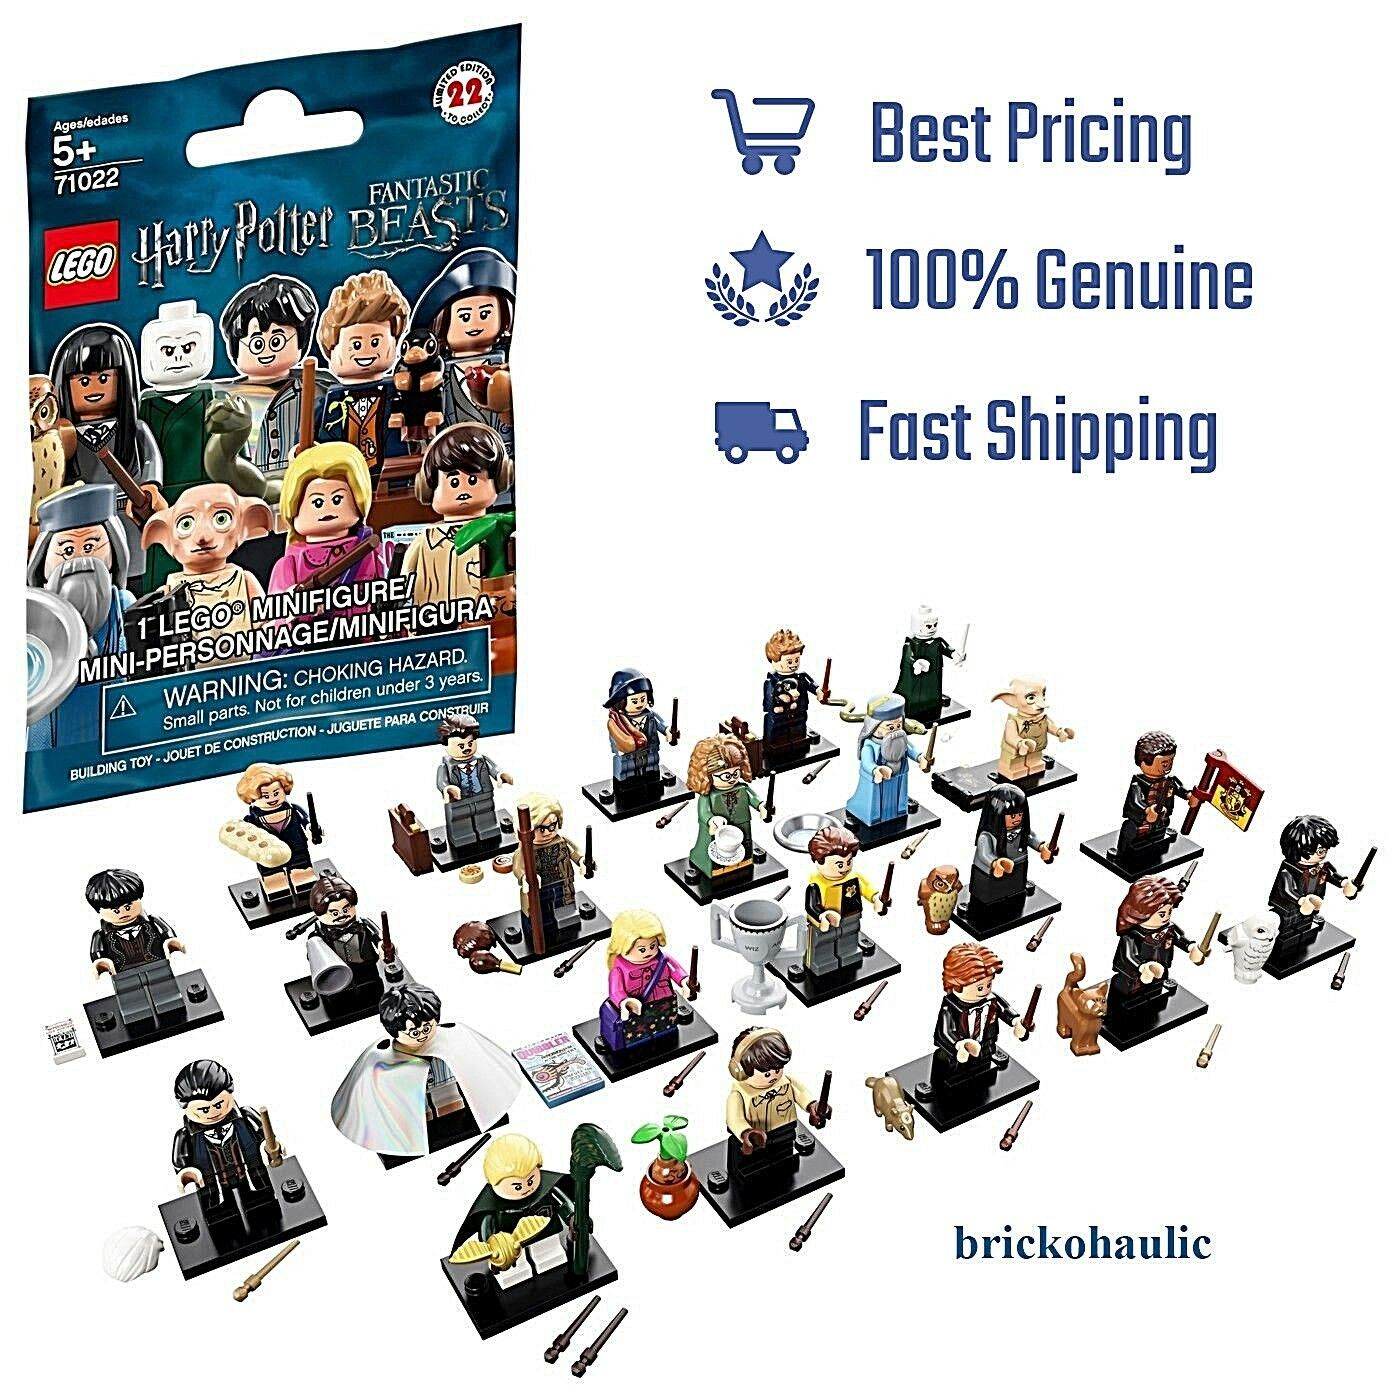 IN HAND Lego Harry Potter Fantastic Beasts Series 1 Minifigures 71022